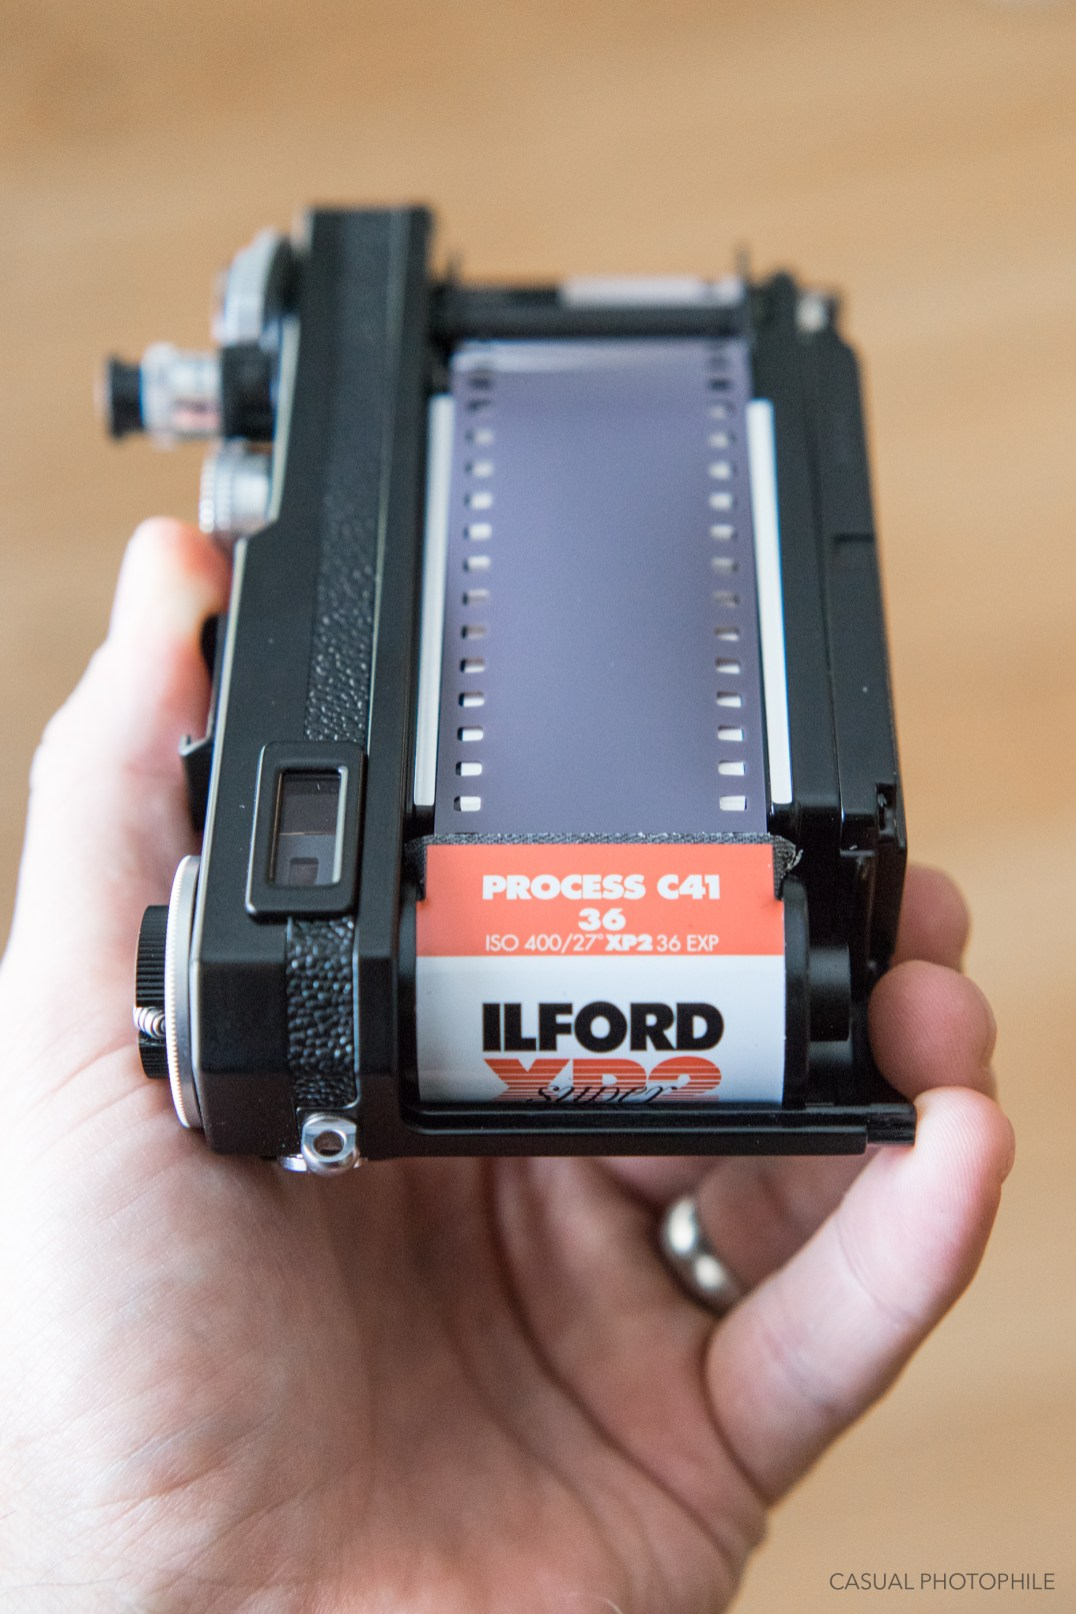 ilford xp2 super review (1 of 2)